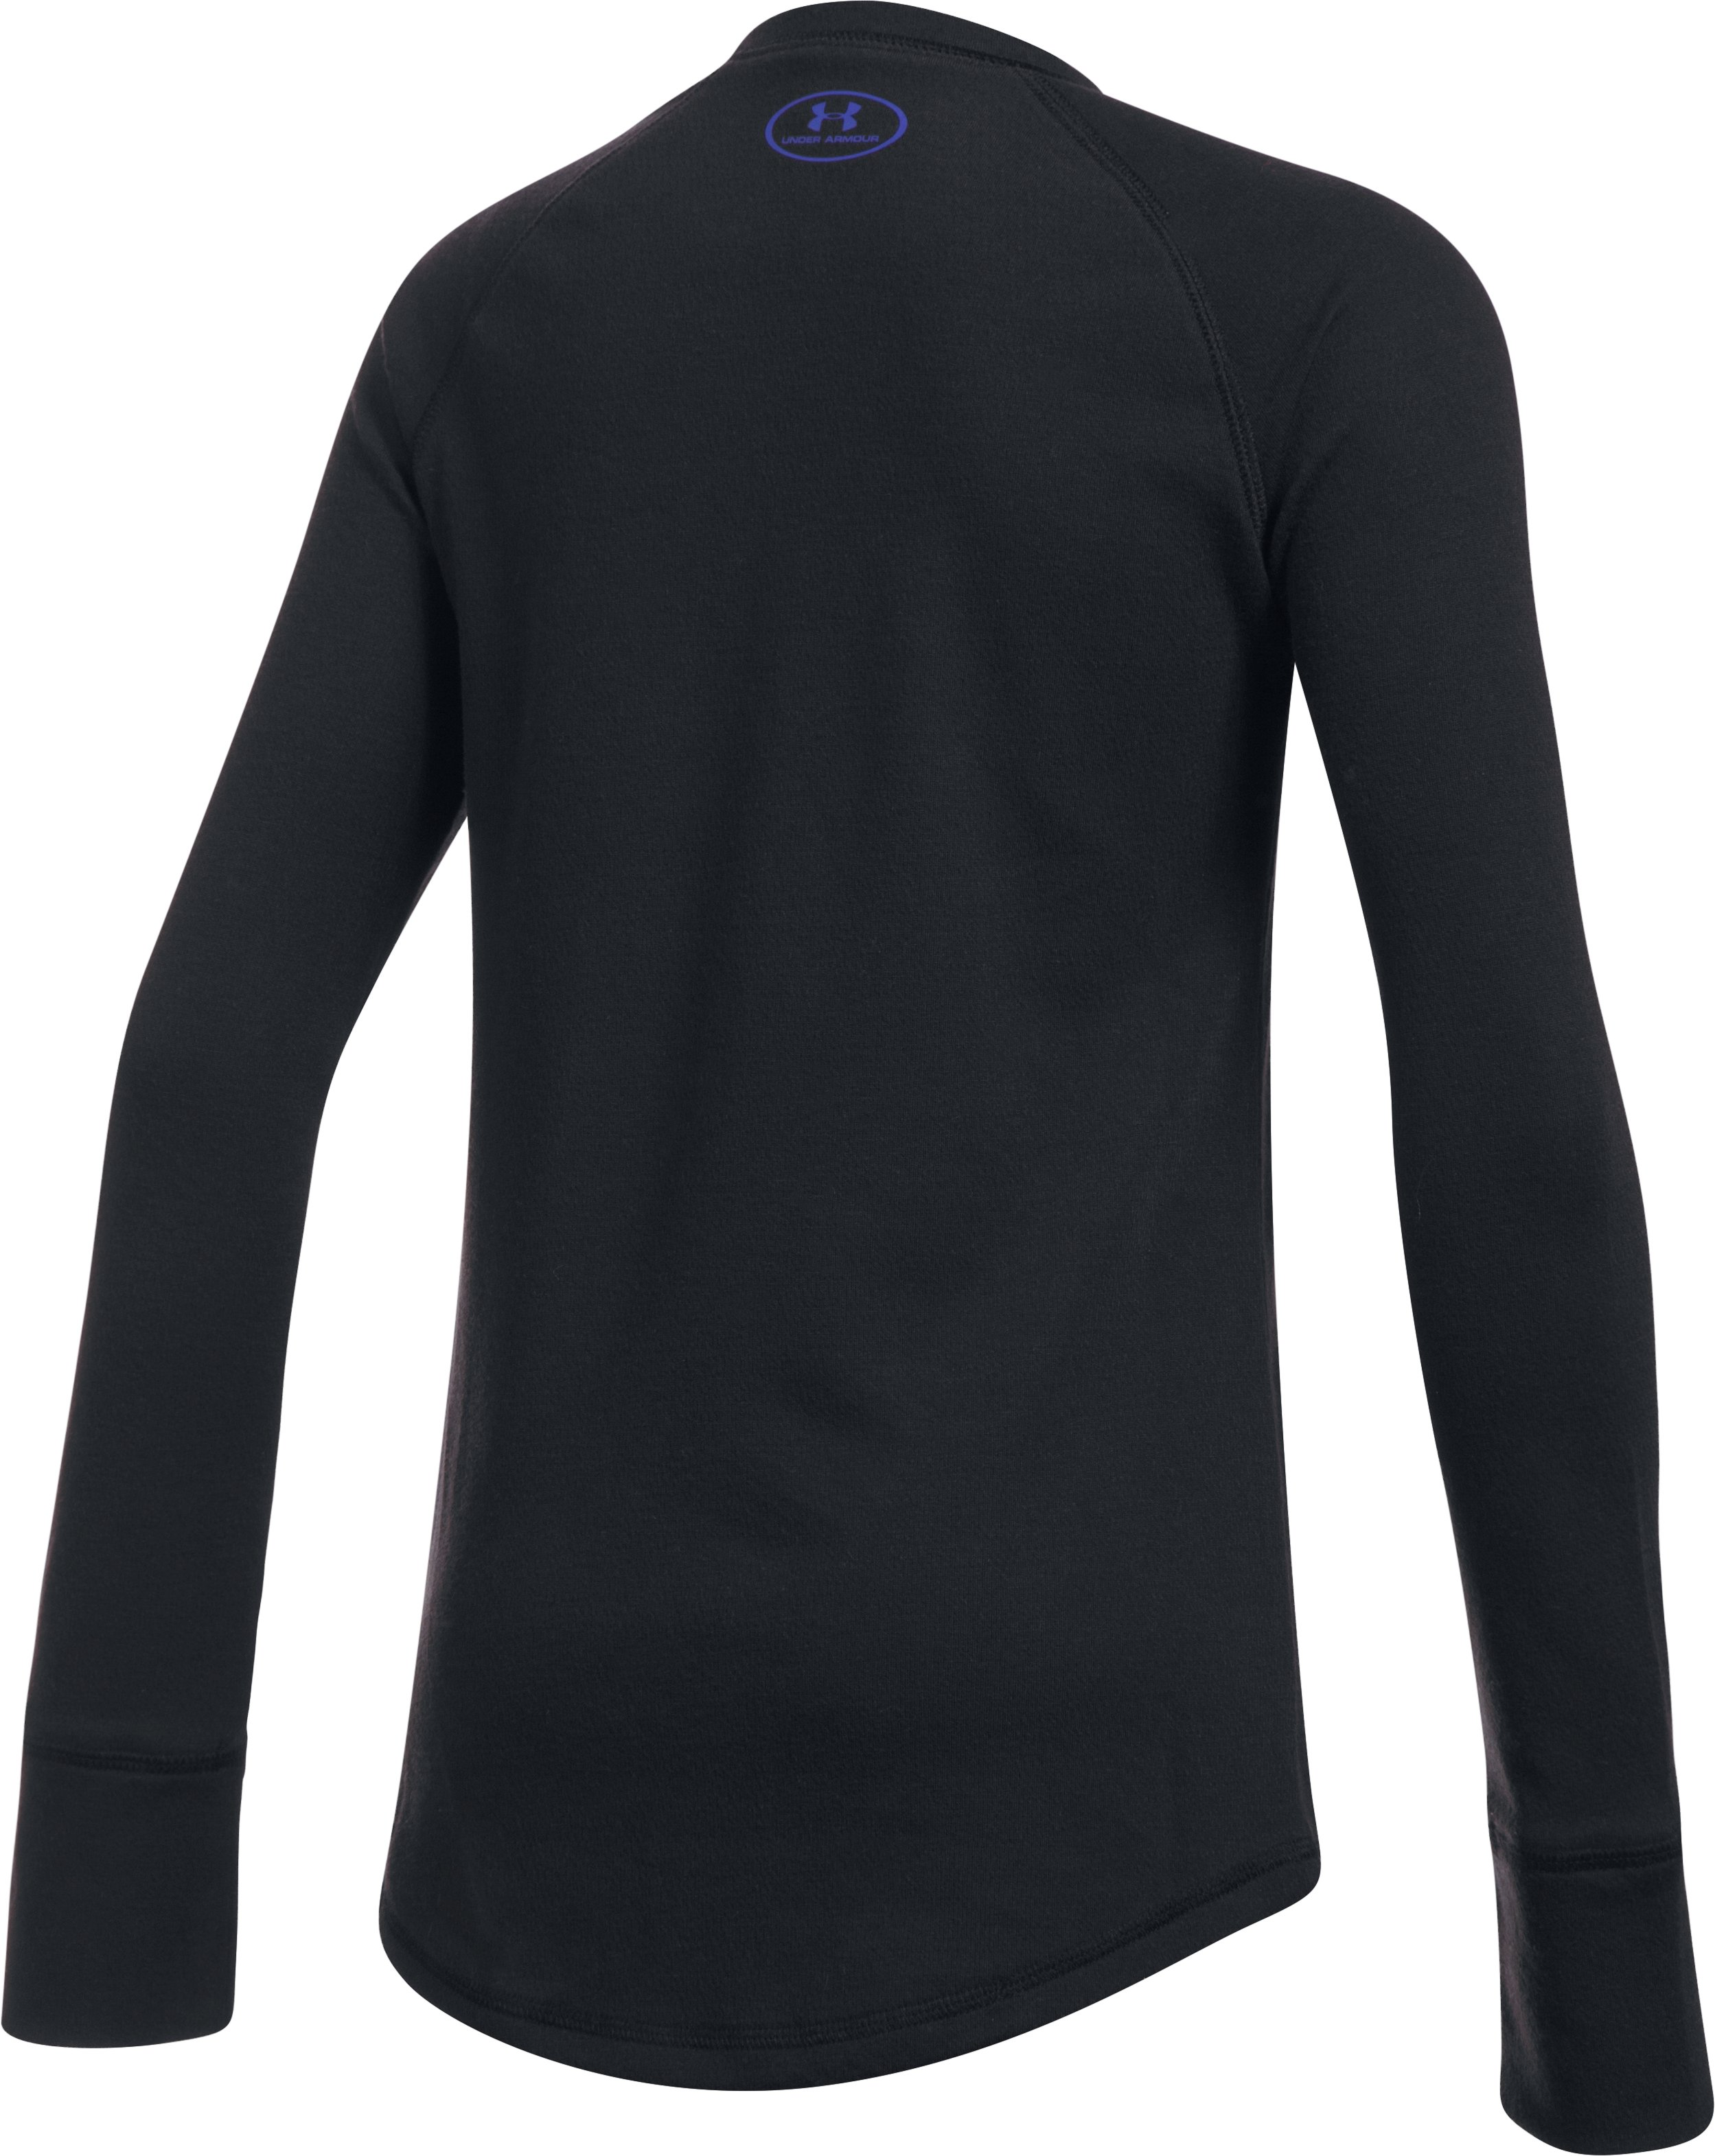 Girls' ColdGear® Infrared Knit Long Sleeve, Black , undefined